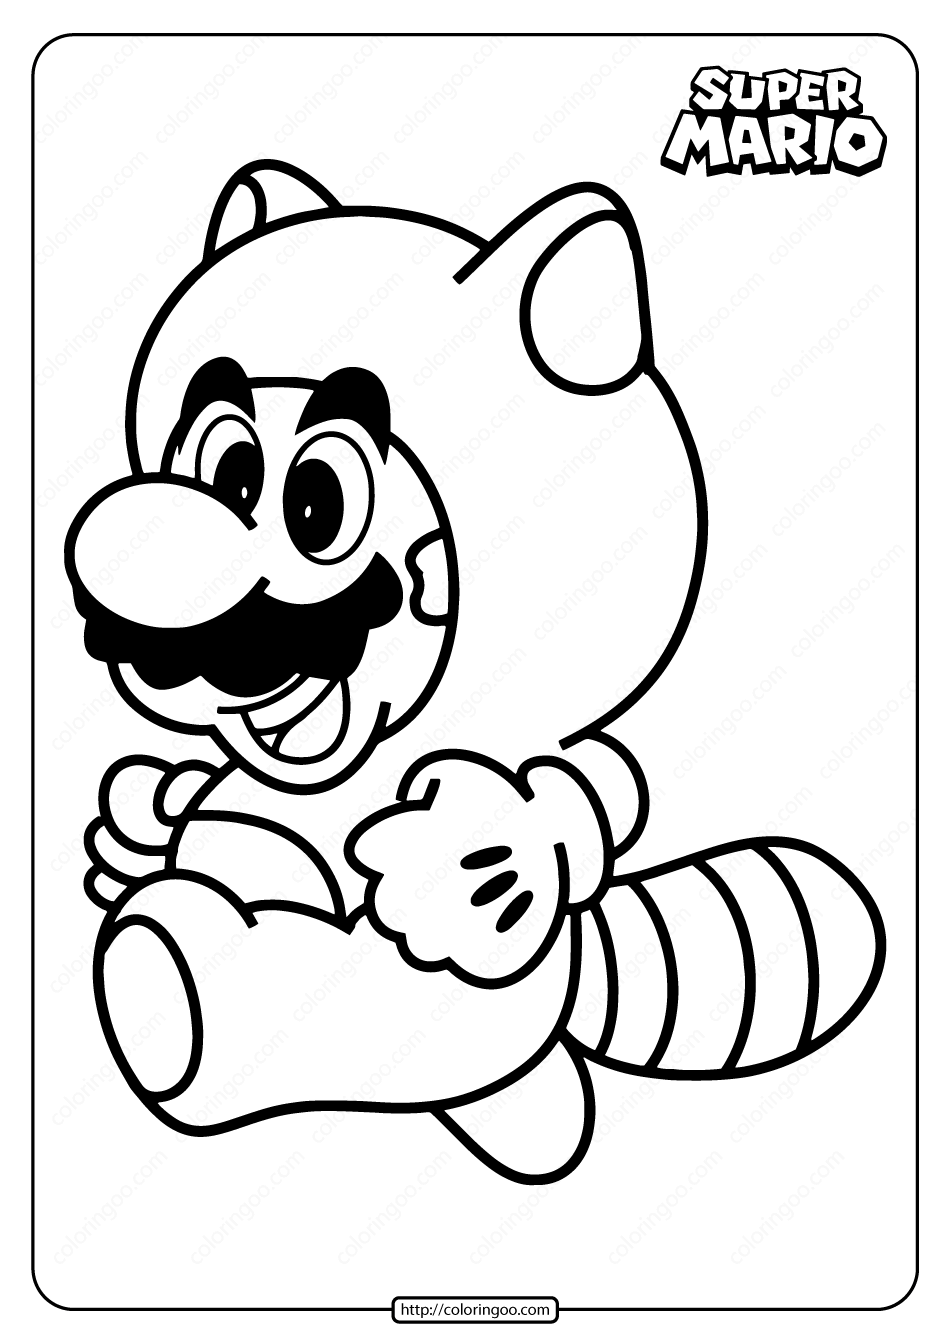 coloring pages to print for free free printable super mario coloring page print coloring to pages free for